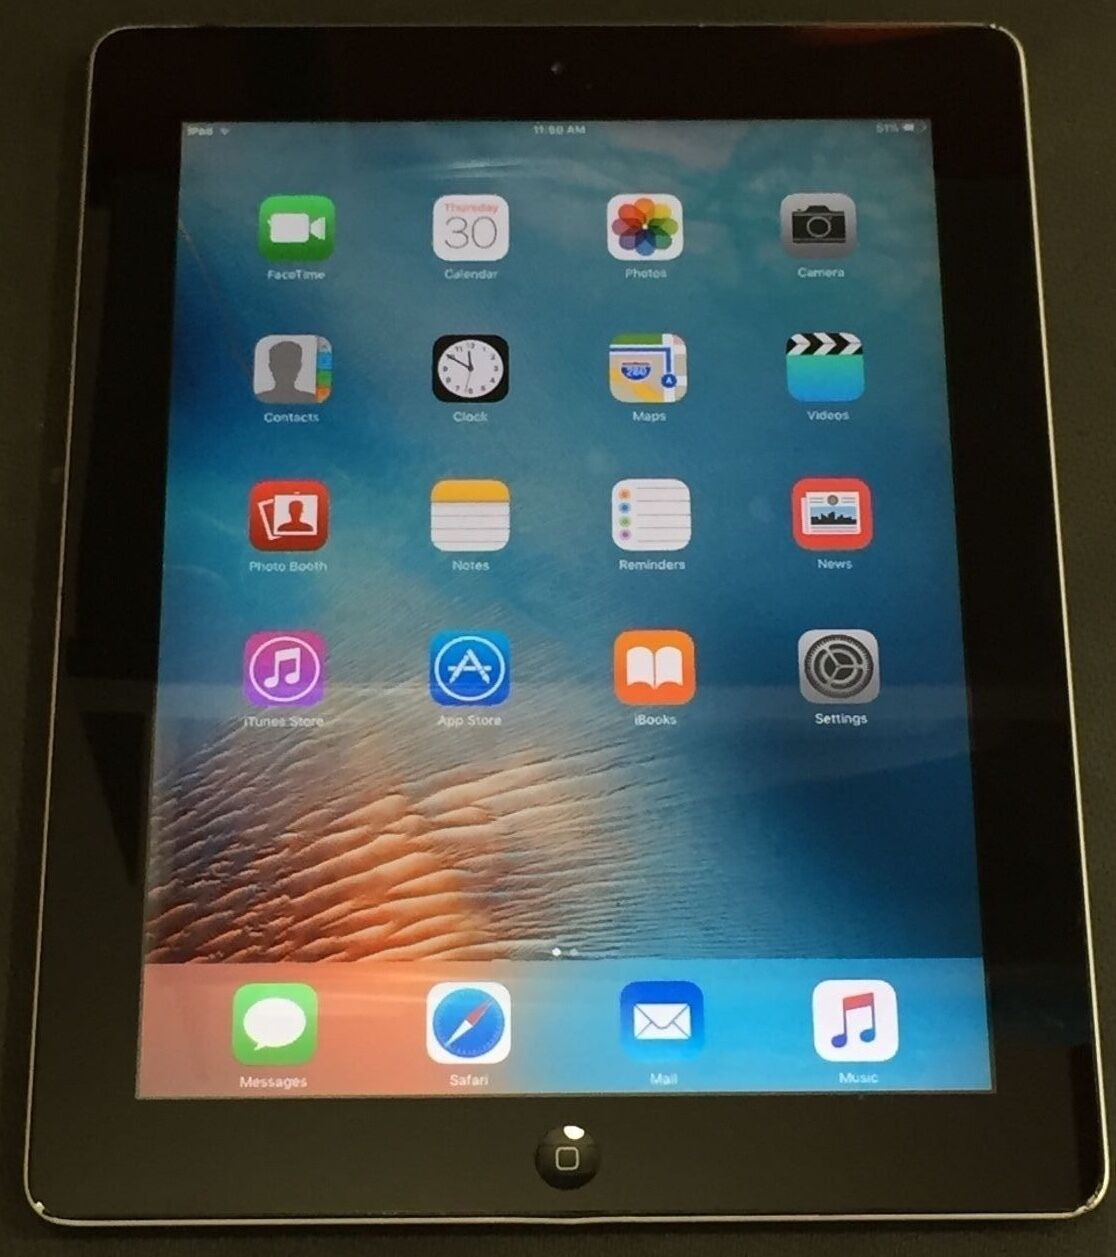 Wi-Fi MC769LL//A 9.7in Tablet Black A1395 TESTED WORKING Apple iPad 2 16GB